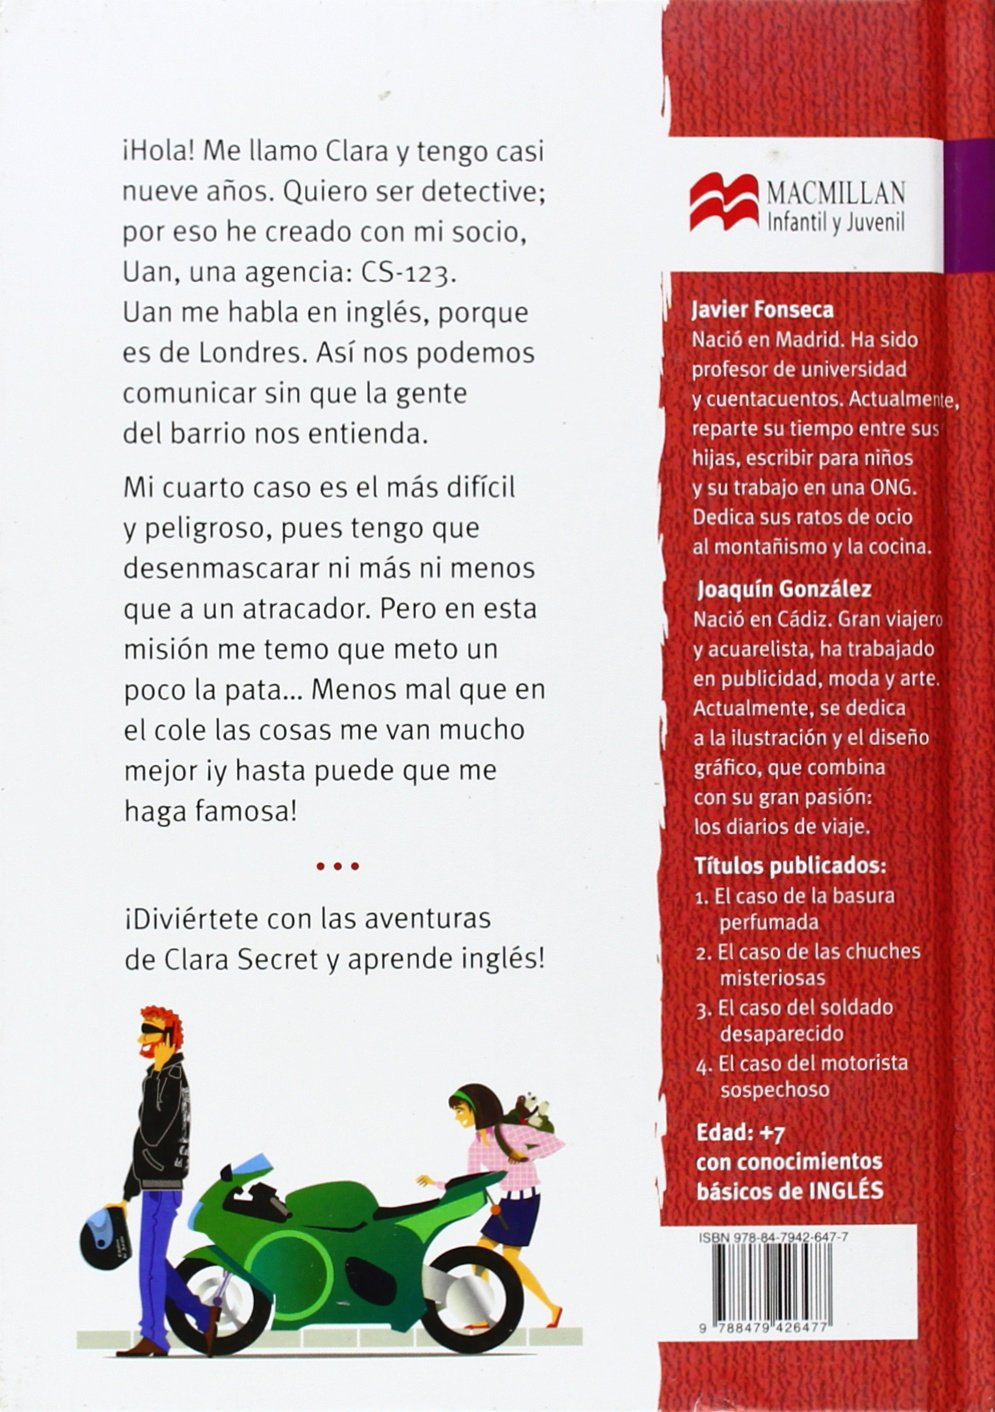 El caso del motorista sospechoso (Clara Secret) (Spanish and English Edition): Javier Fonseca, Joaquín González: 9788479426477: Amazon.com: Books